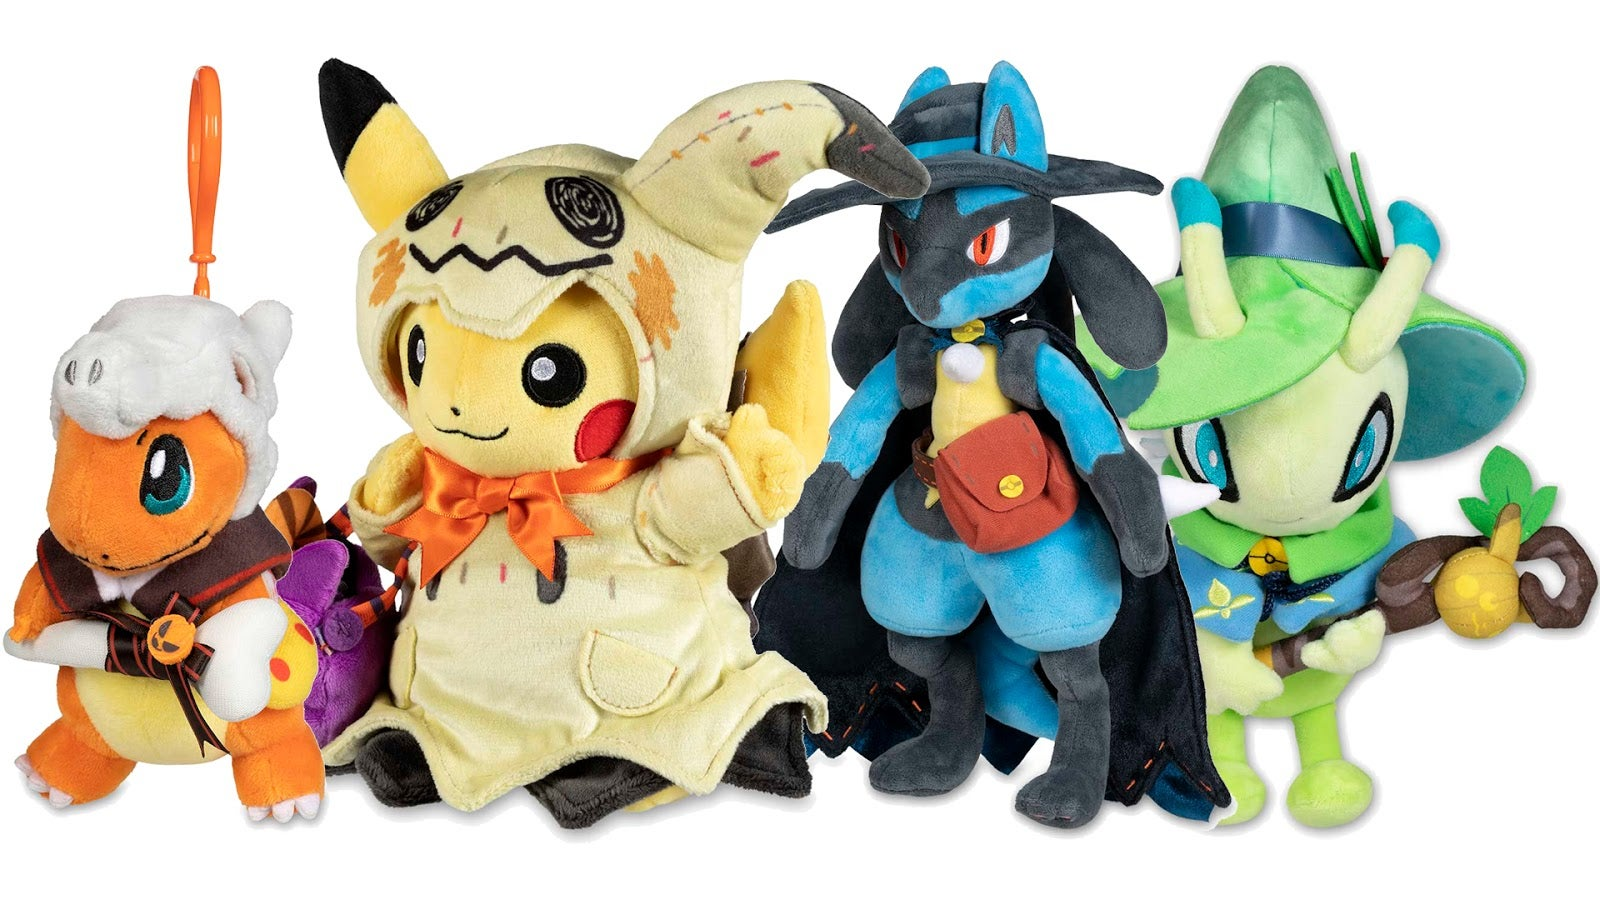 I Have Several Issues With This Year's Halloween Pokémon Toys